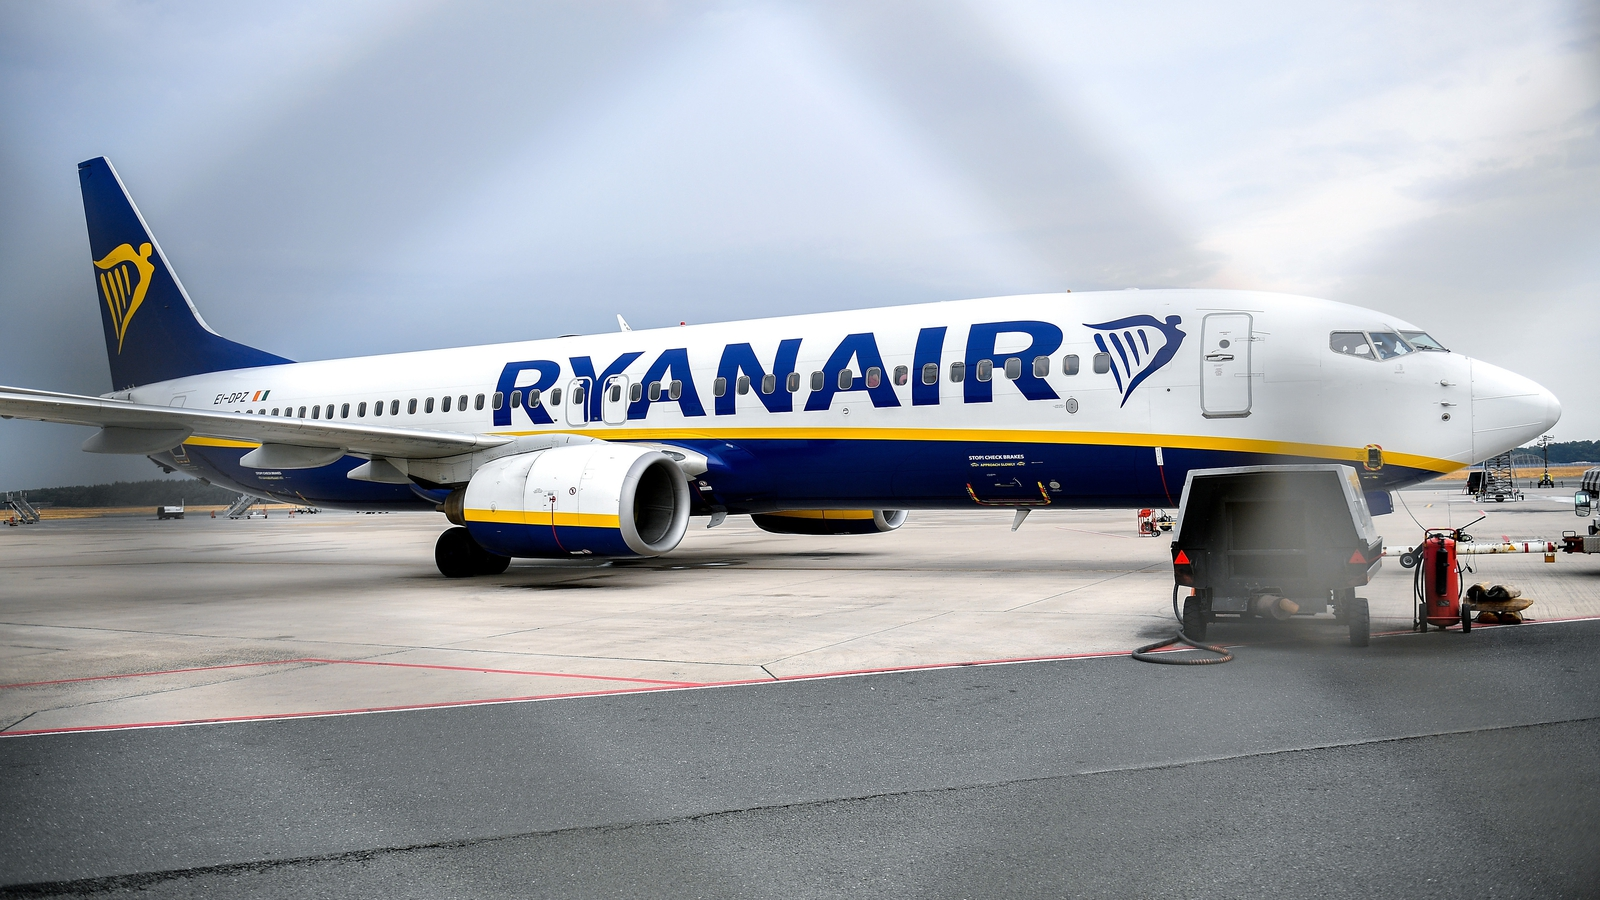 Dublin-based Ryanair pilots to vote on proposed deal